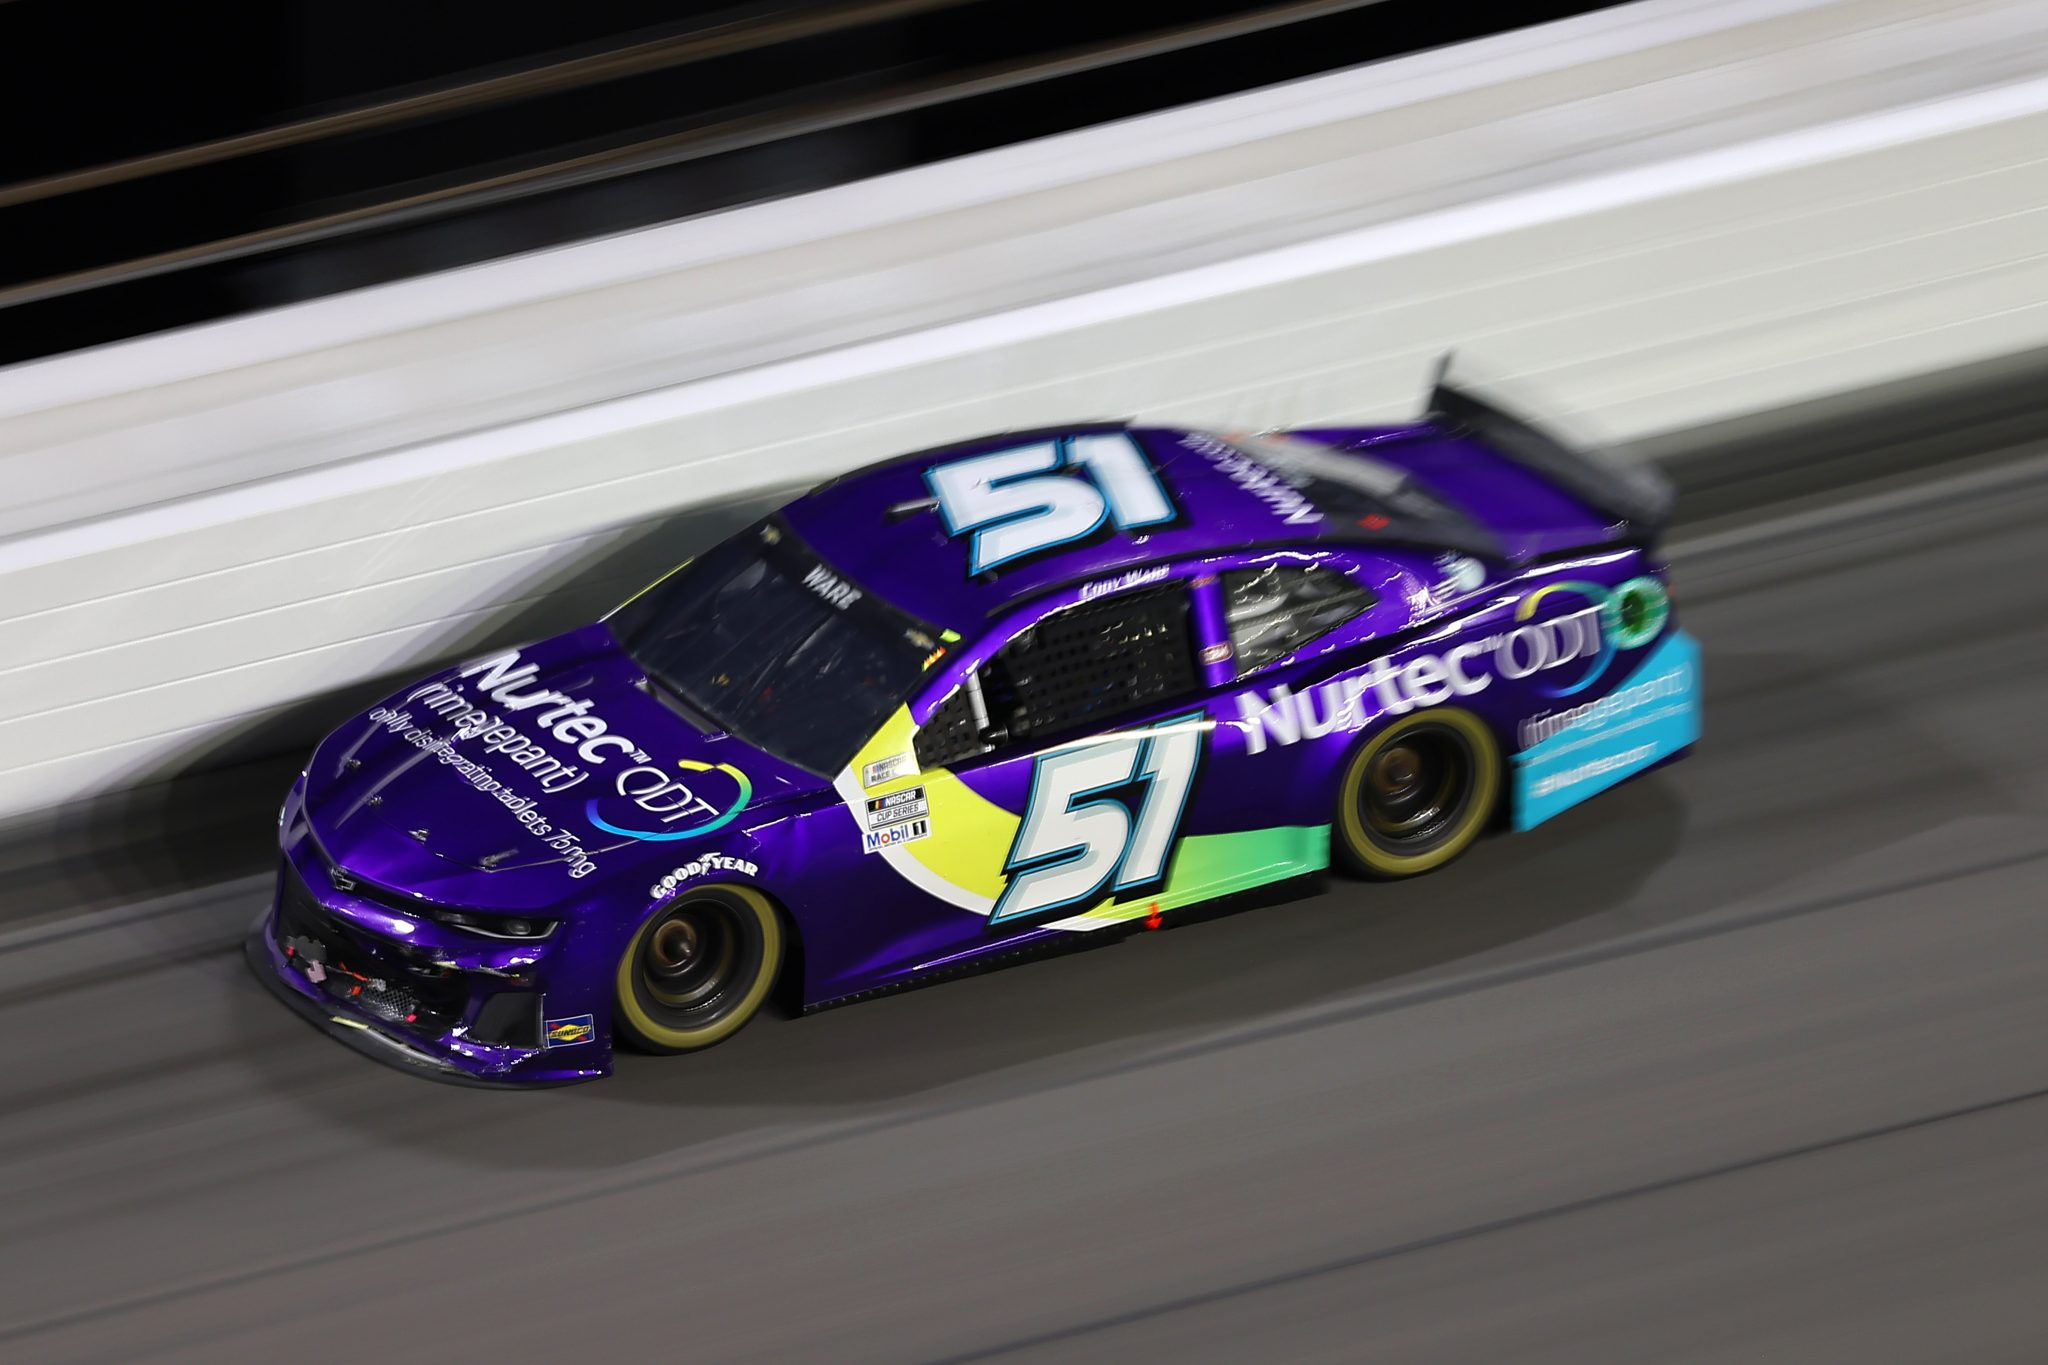 DAYTONA BEACH, FLORIDA - AUGUST 28: Cody Ware, driver of the #51 Nurtec ODT Chevrolet, drives during the NASCAR Cup Series Coke Zero Sugar 400 at Daytona International Speedway on August 28, 2021 in Daytona Beach, Florida. (Photo by James Gilbert/Getty Images) | Getty Images